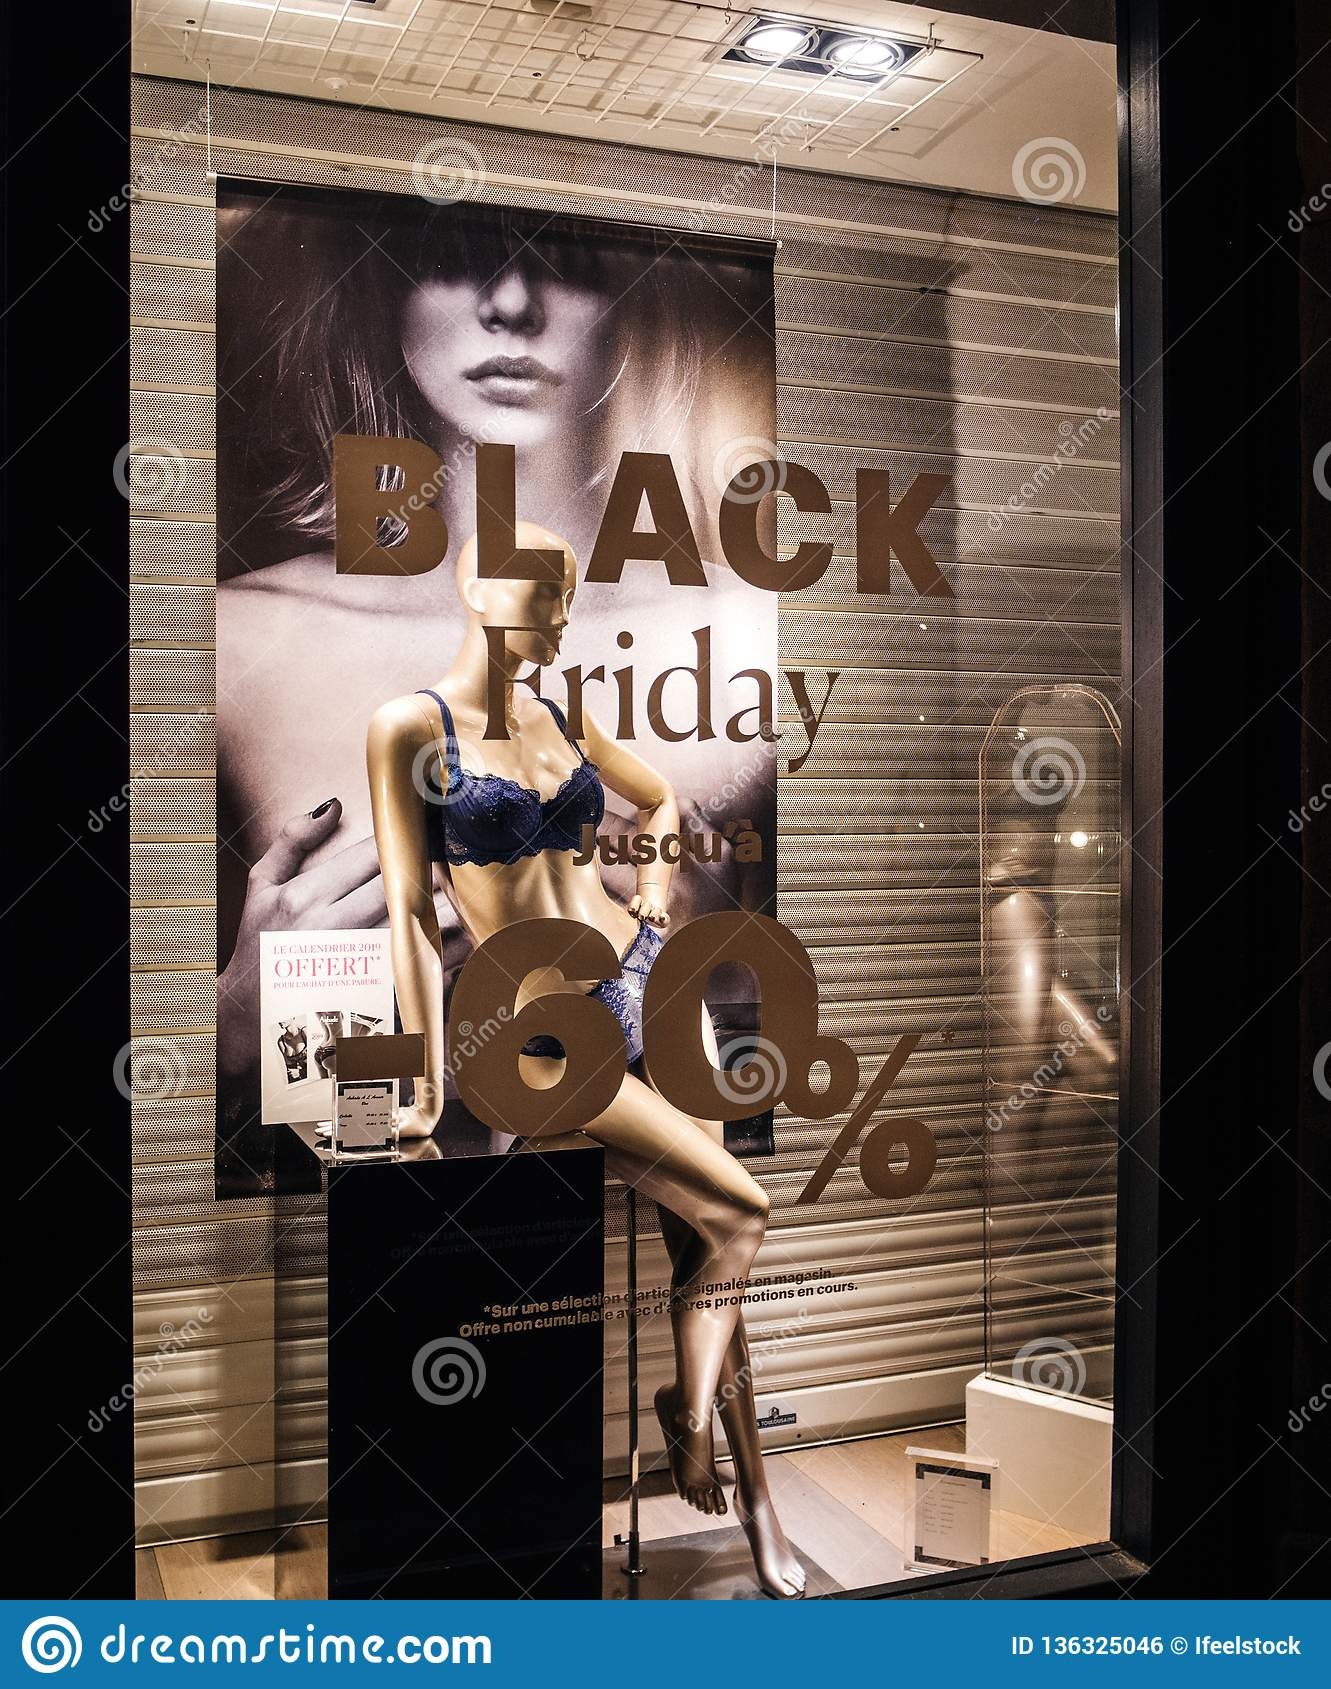 c027d15e1c Paris, France - Nov 25, 2018: lingerie on a mannequin in the showcase of a  fashion store with Black Friday discount reduction